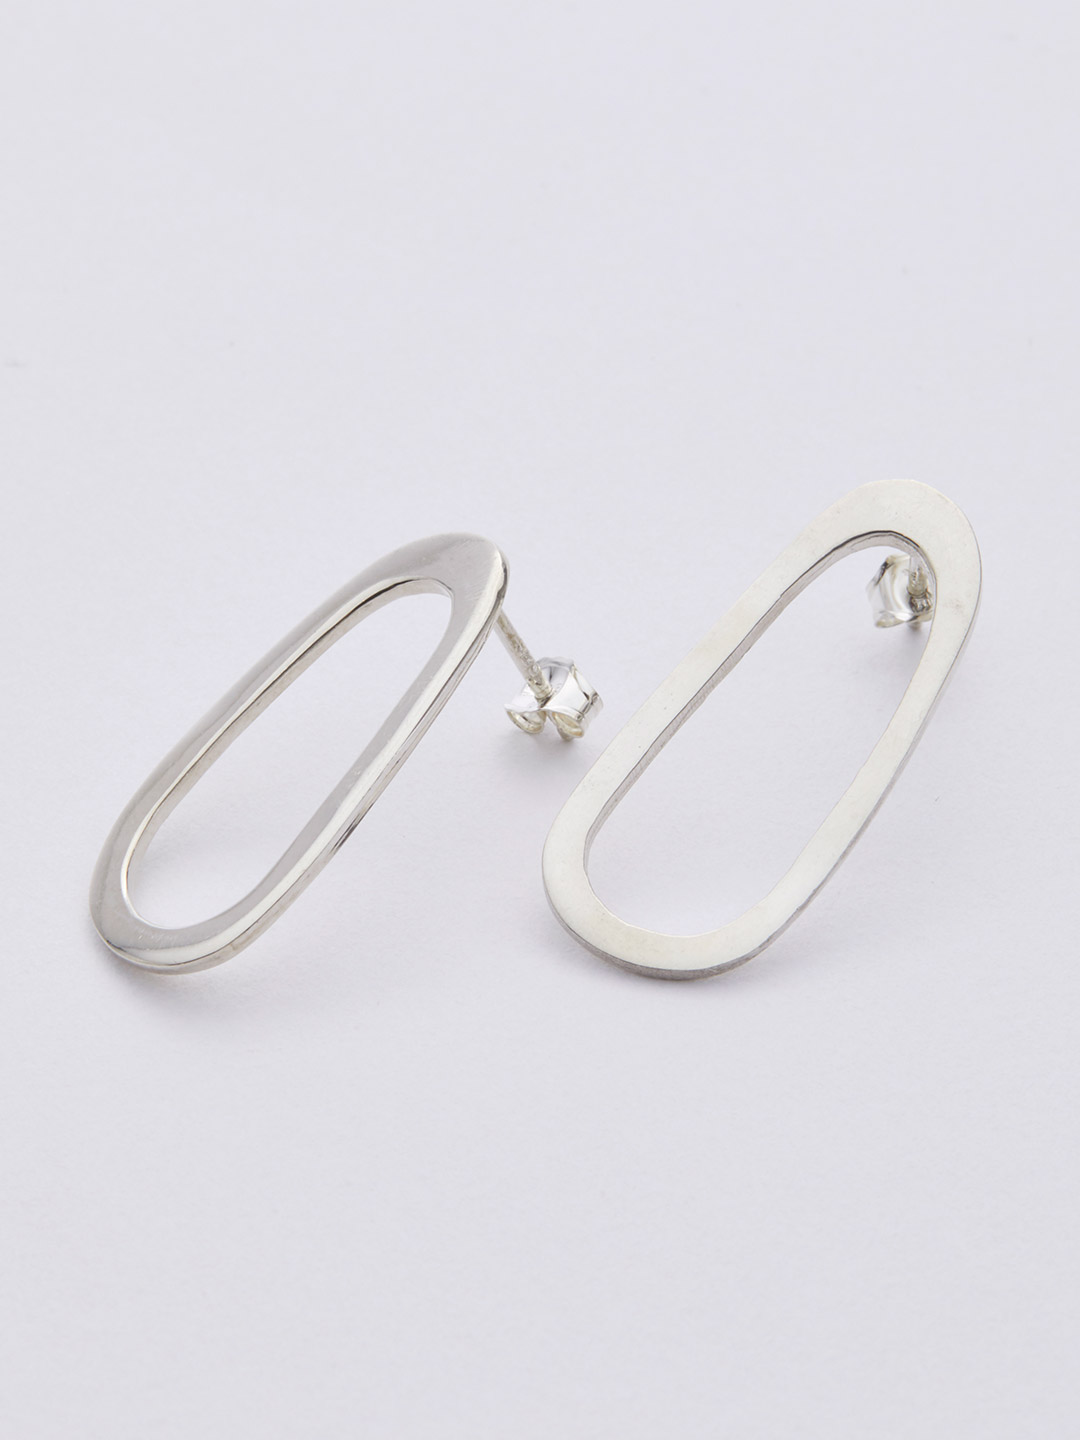 Oblong Oval Studs Pierced Earring - Silver